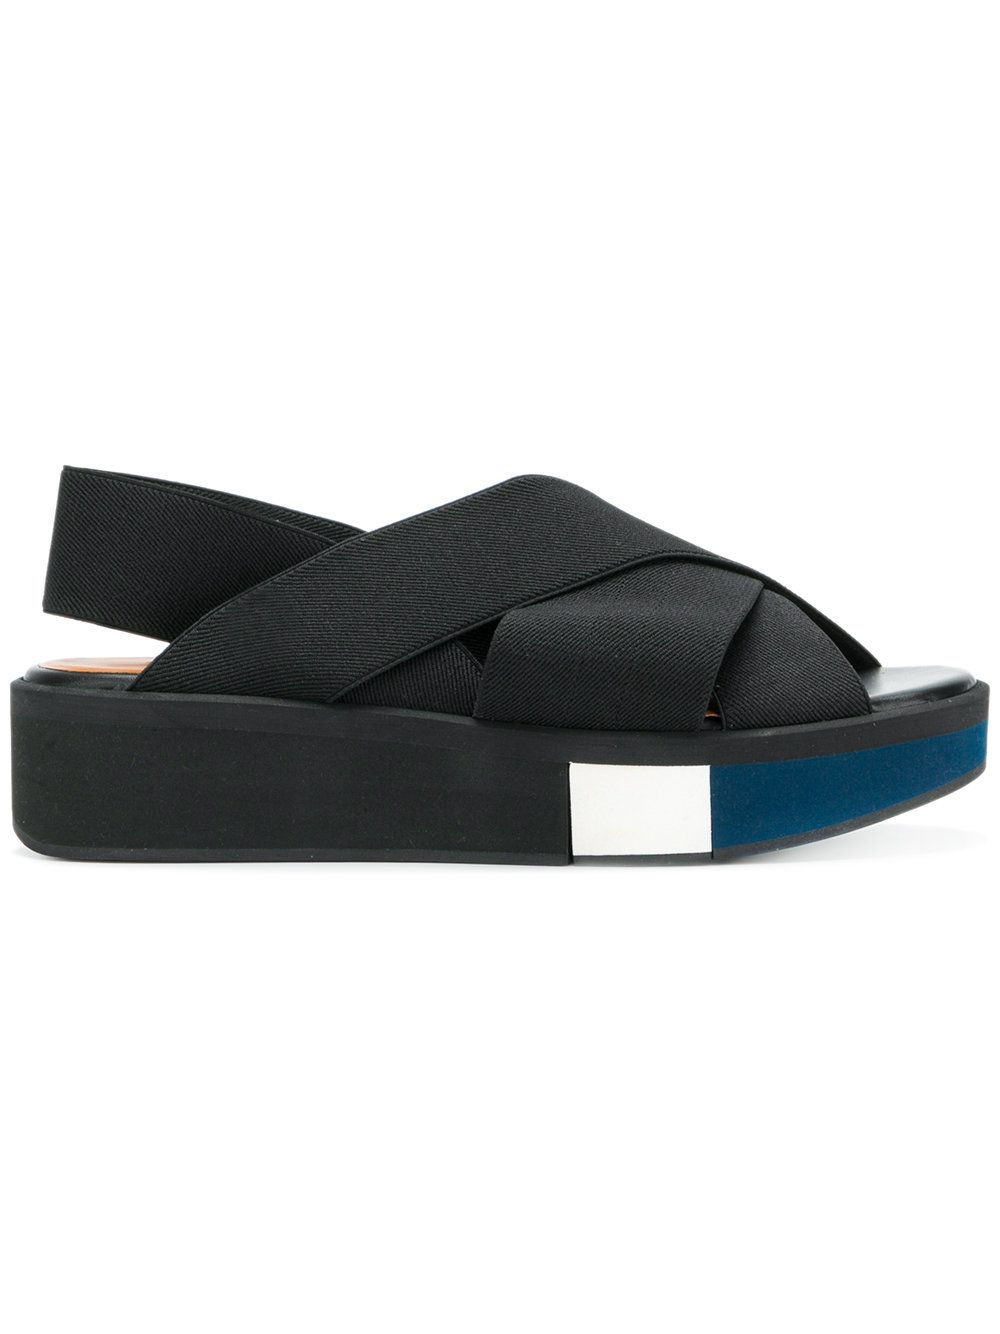 3fa14087a372 ROBERT CLERGERIE .  robertclergerie  shoes